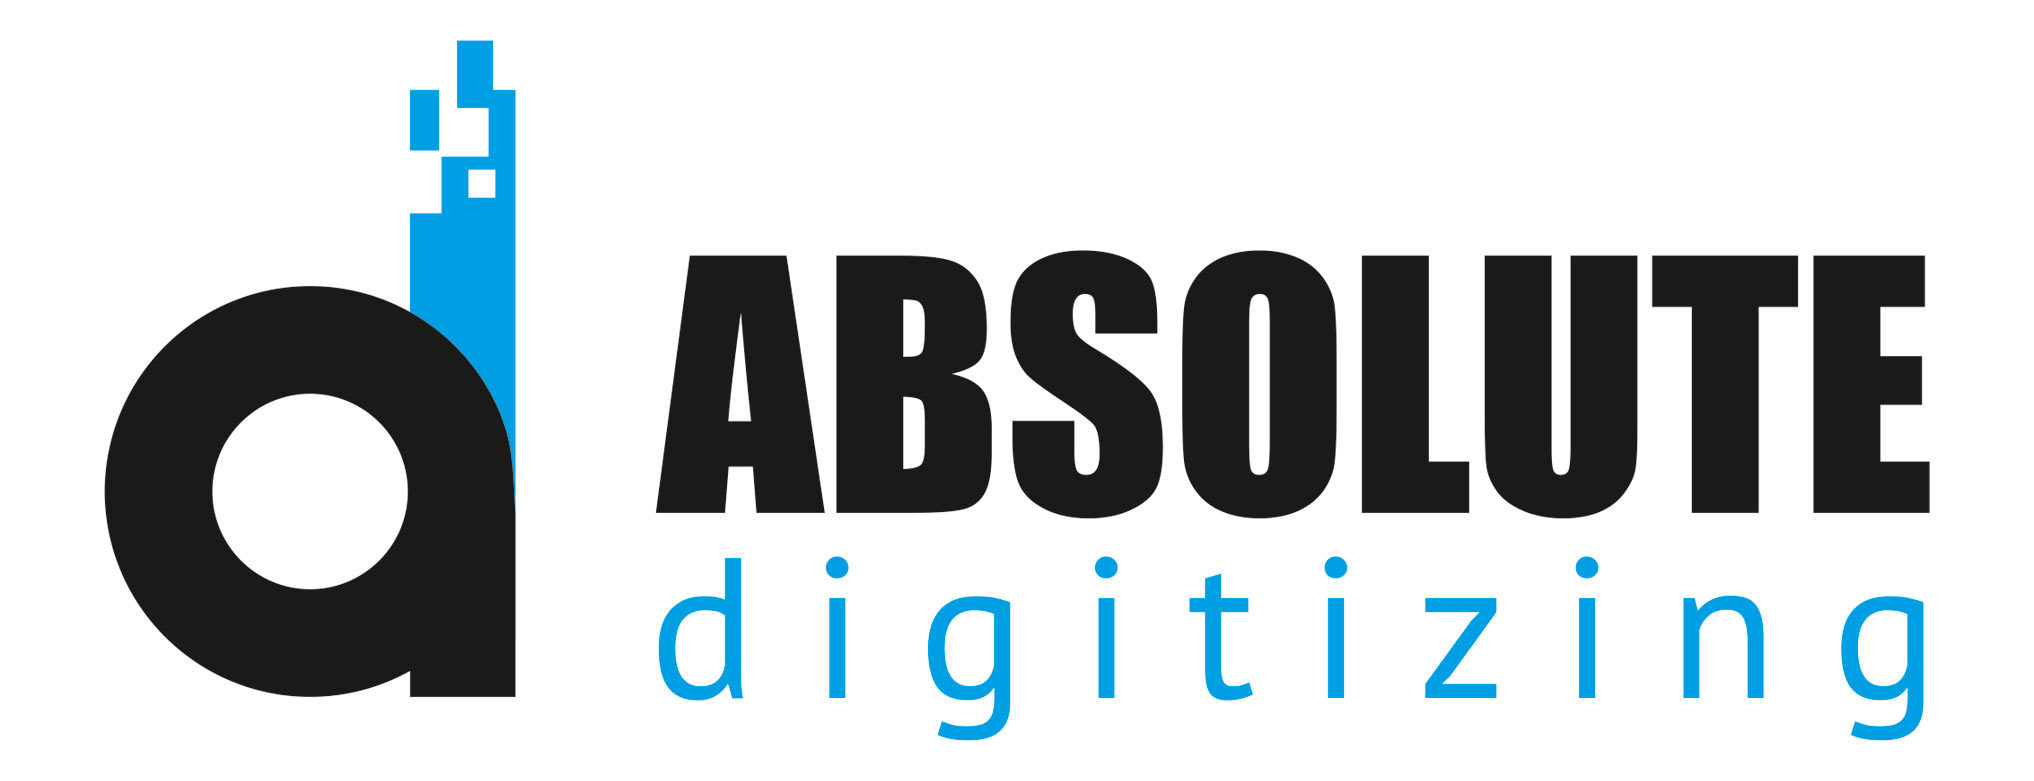 Get Free Embroidery Digitizing Software - Absolute Digitizing